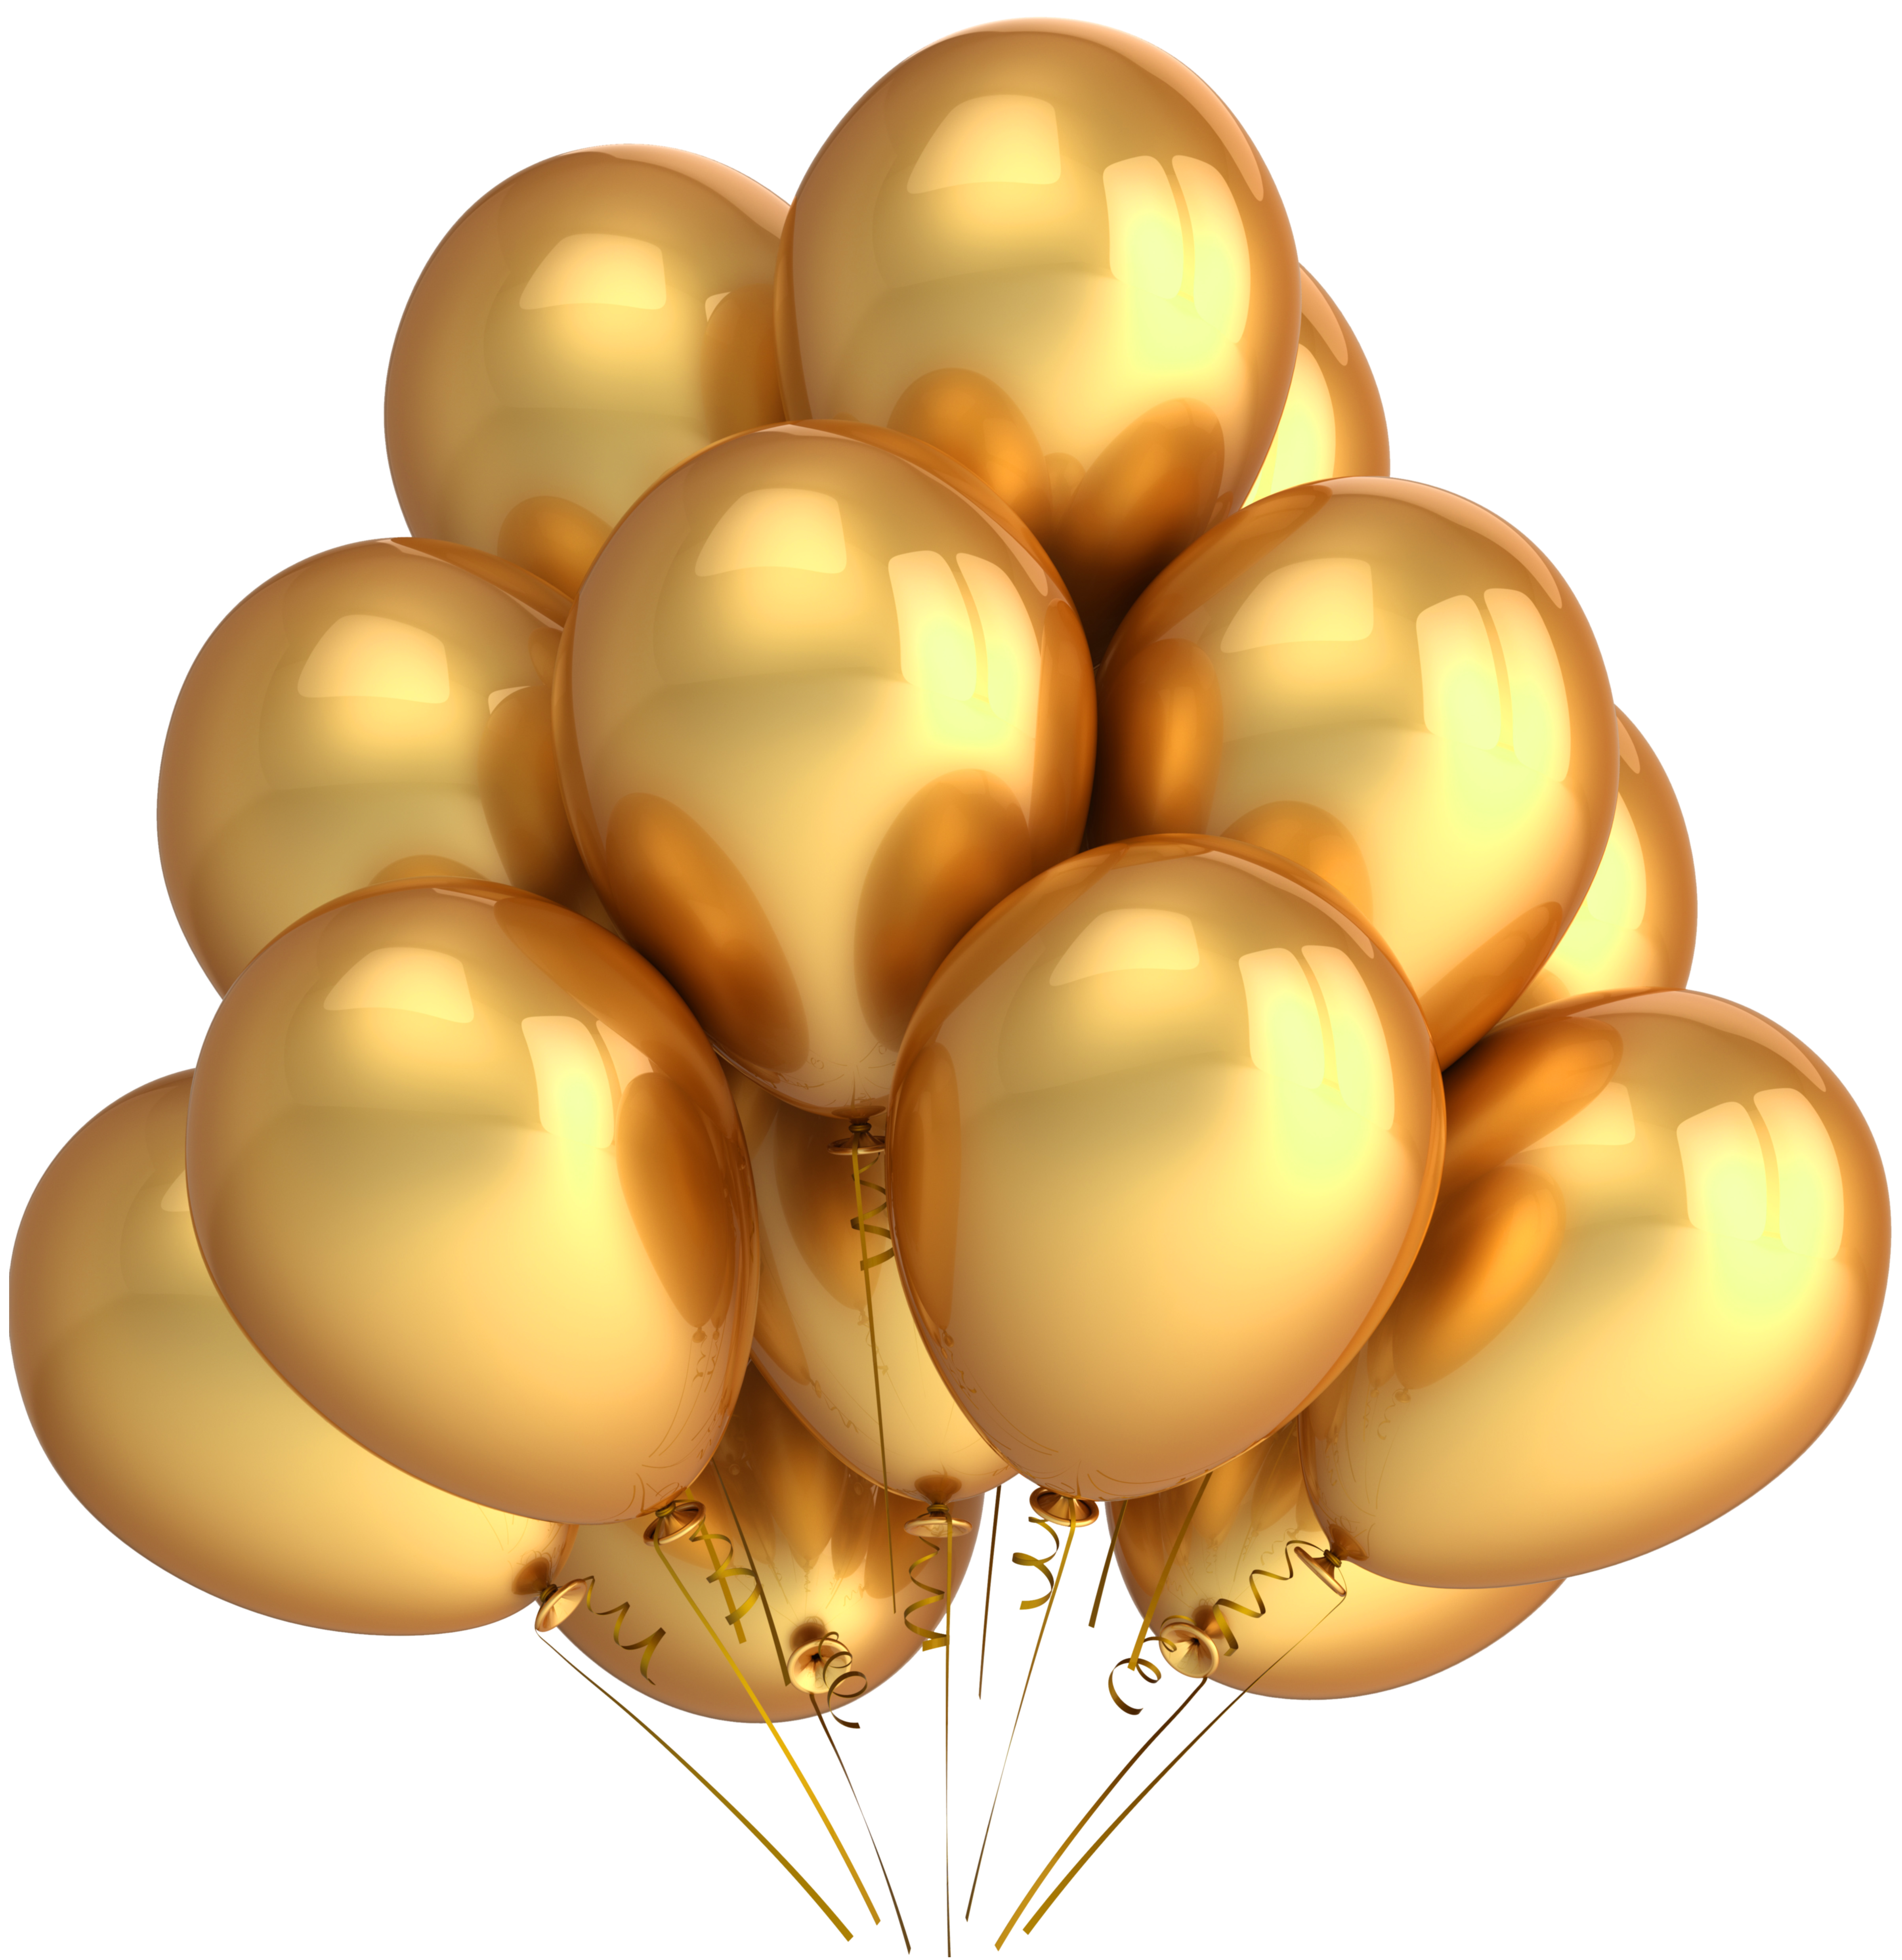 Clipart balloon rose gold. Transparent balloons gallery yopriceville